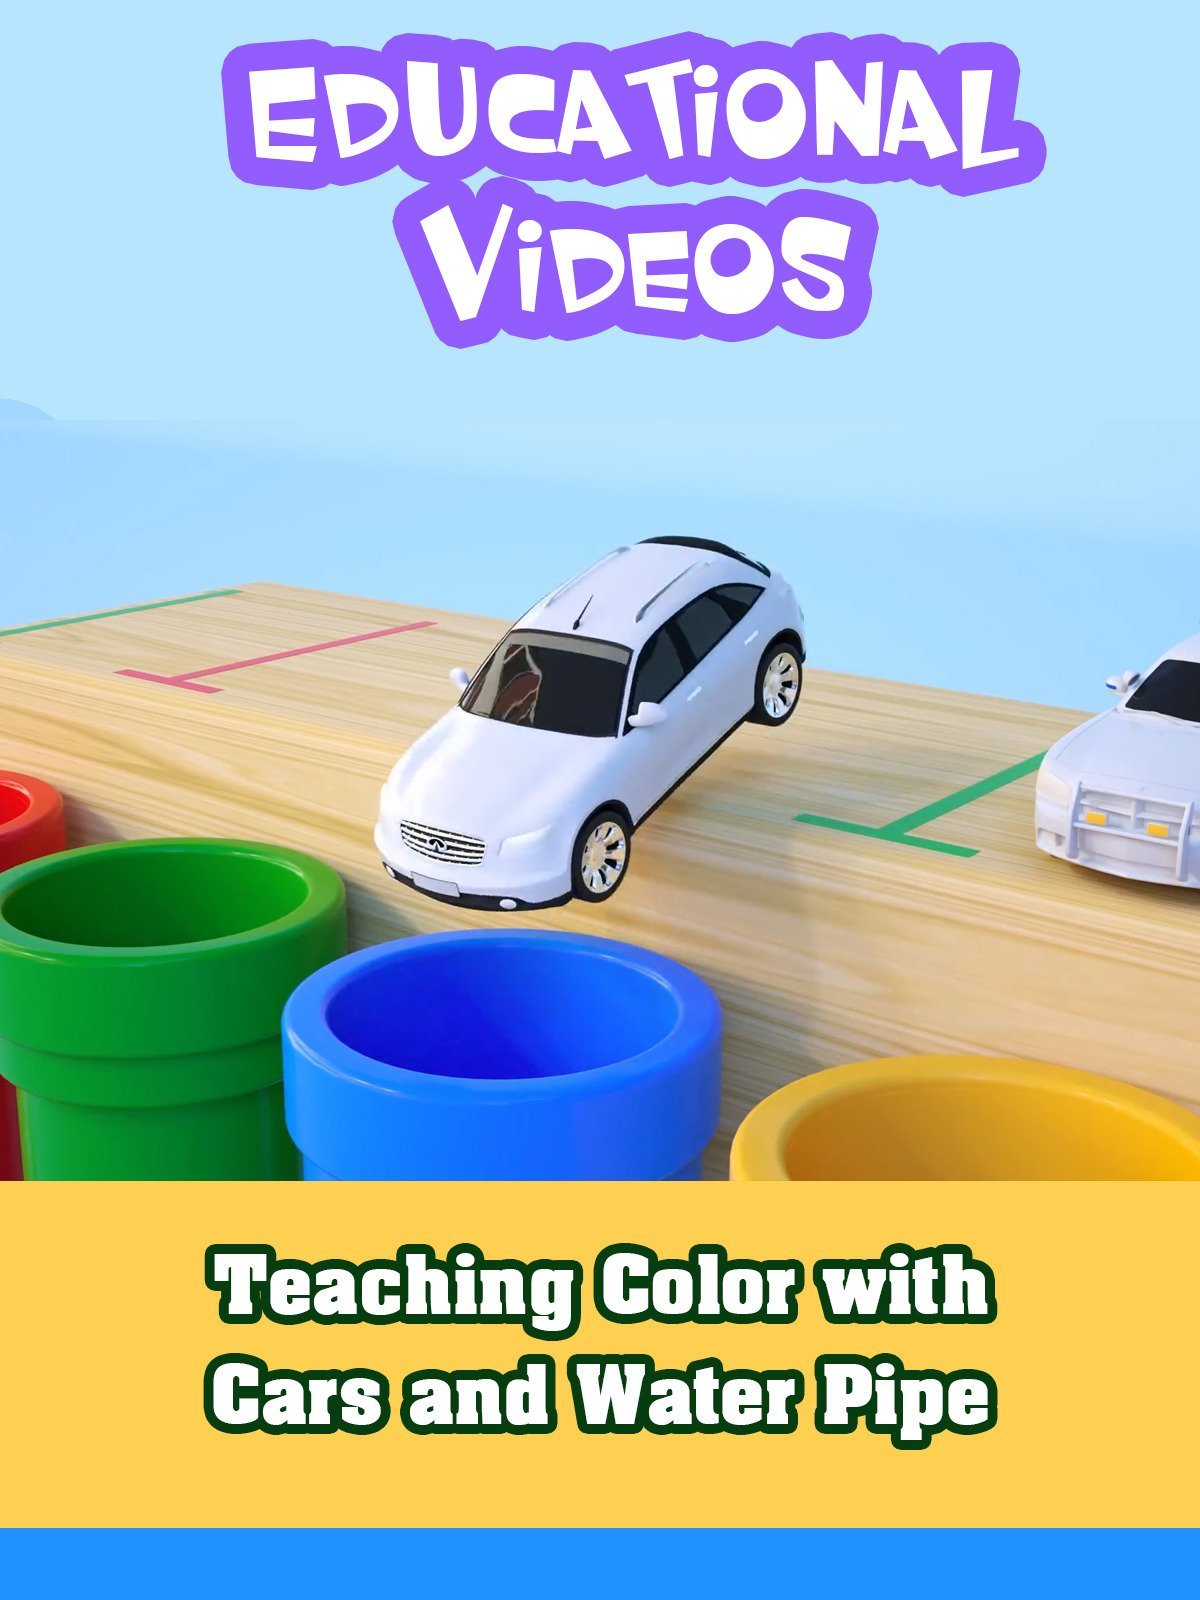 Teaching Color with Cars and Water Pipe